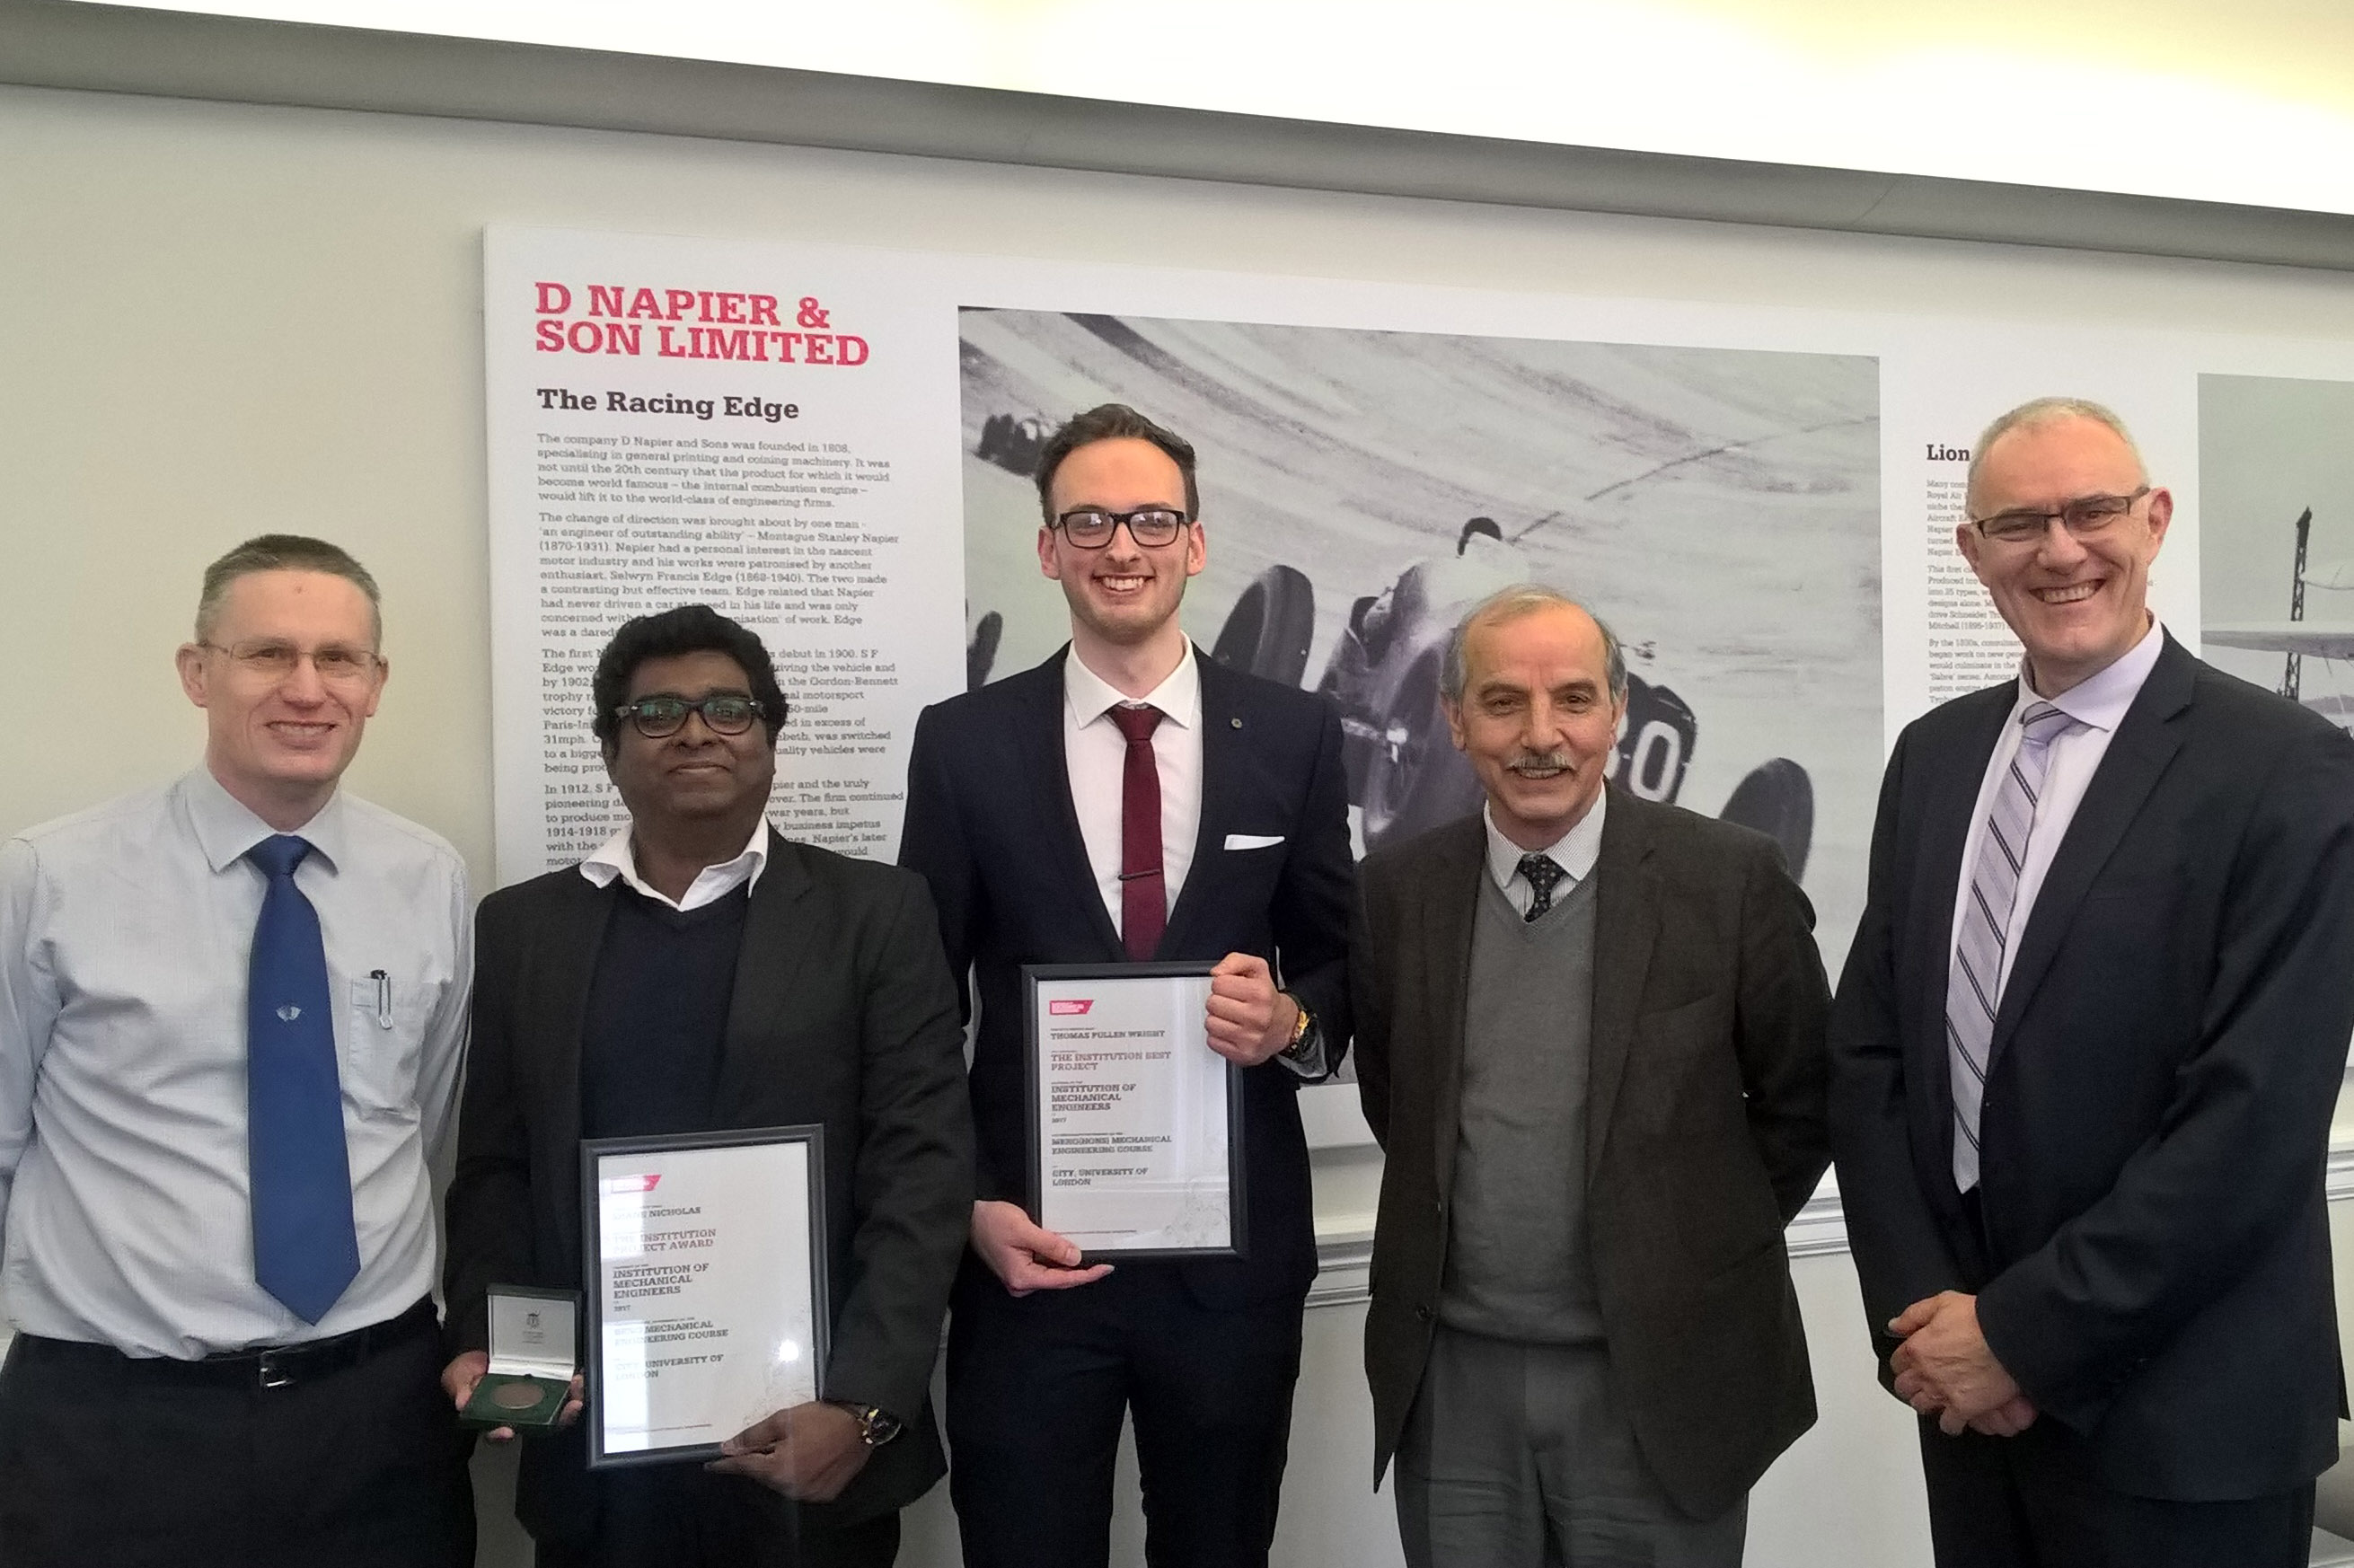 https://www.city.ac.uk/__data/assets/image/0005/397652/IMechE-student-winners-City-thumb-image.jpg